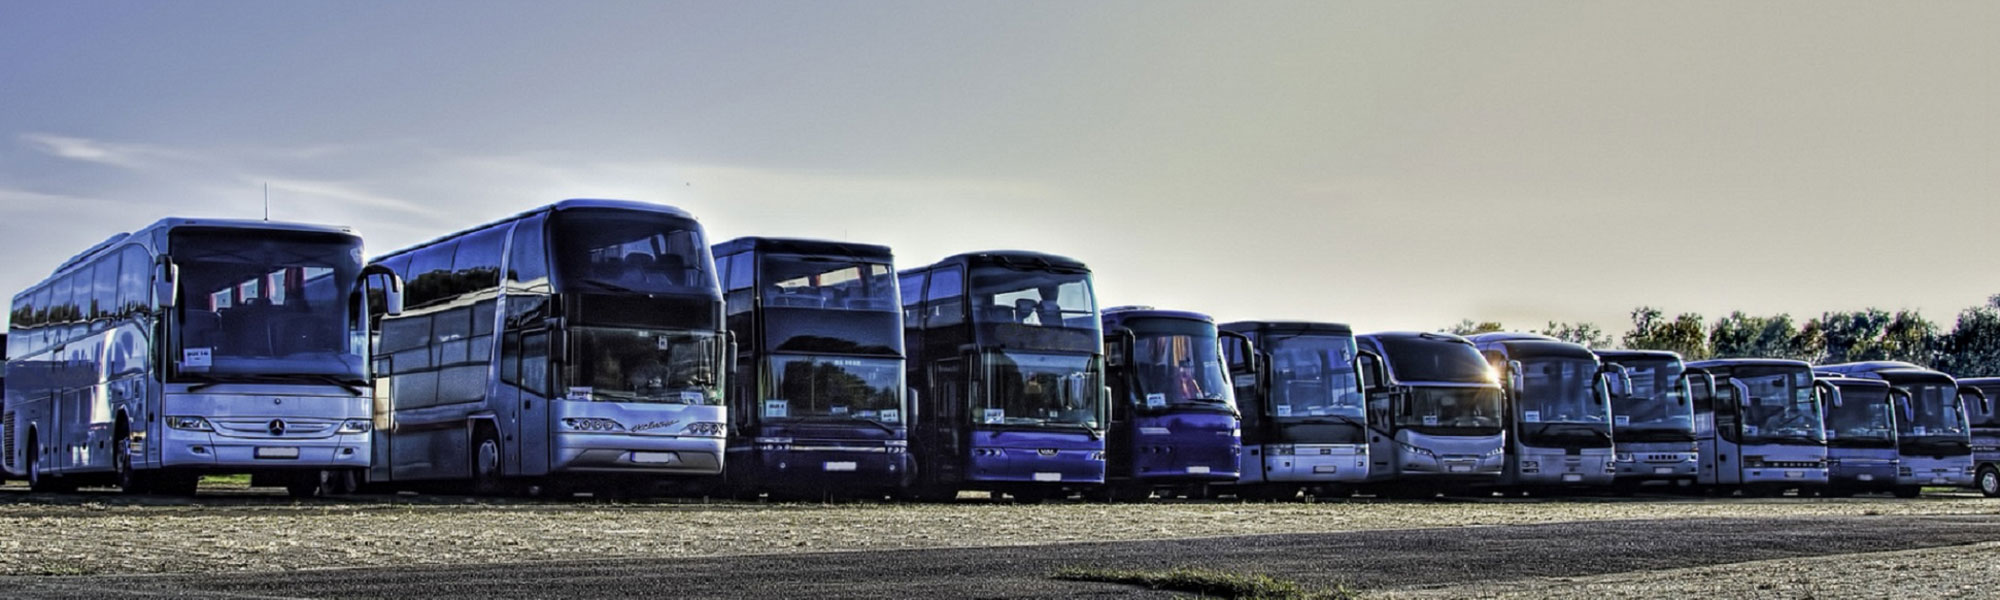 Our Fleet of VIP Buses